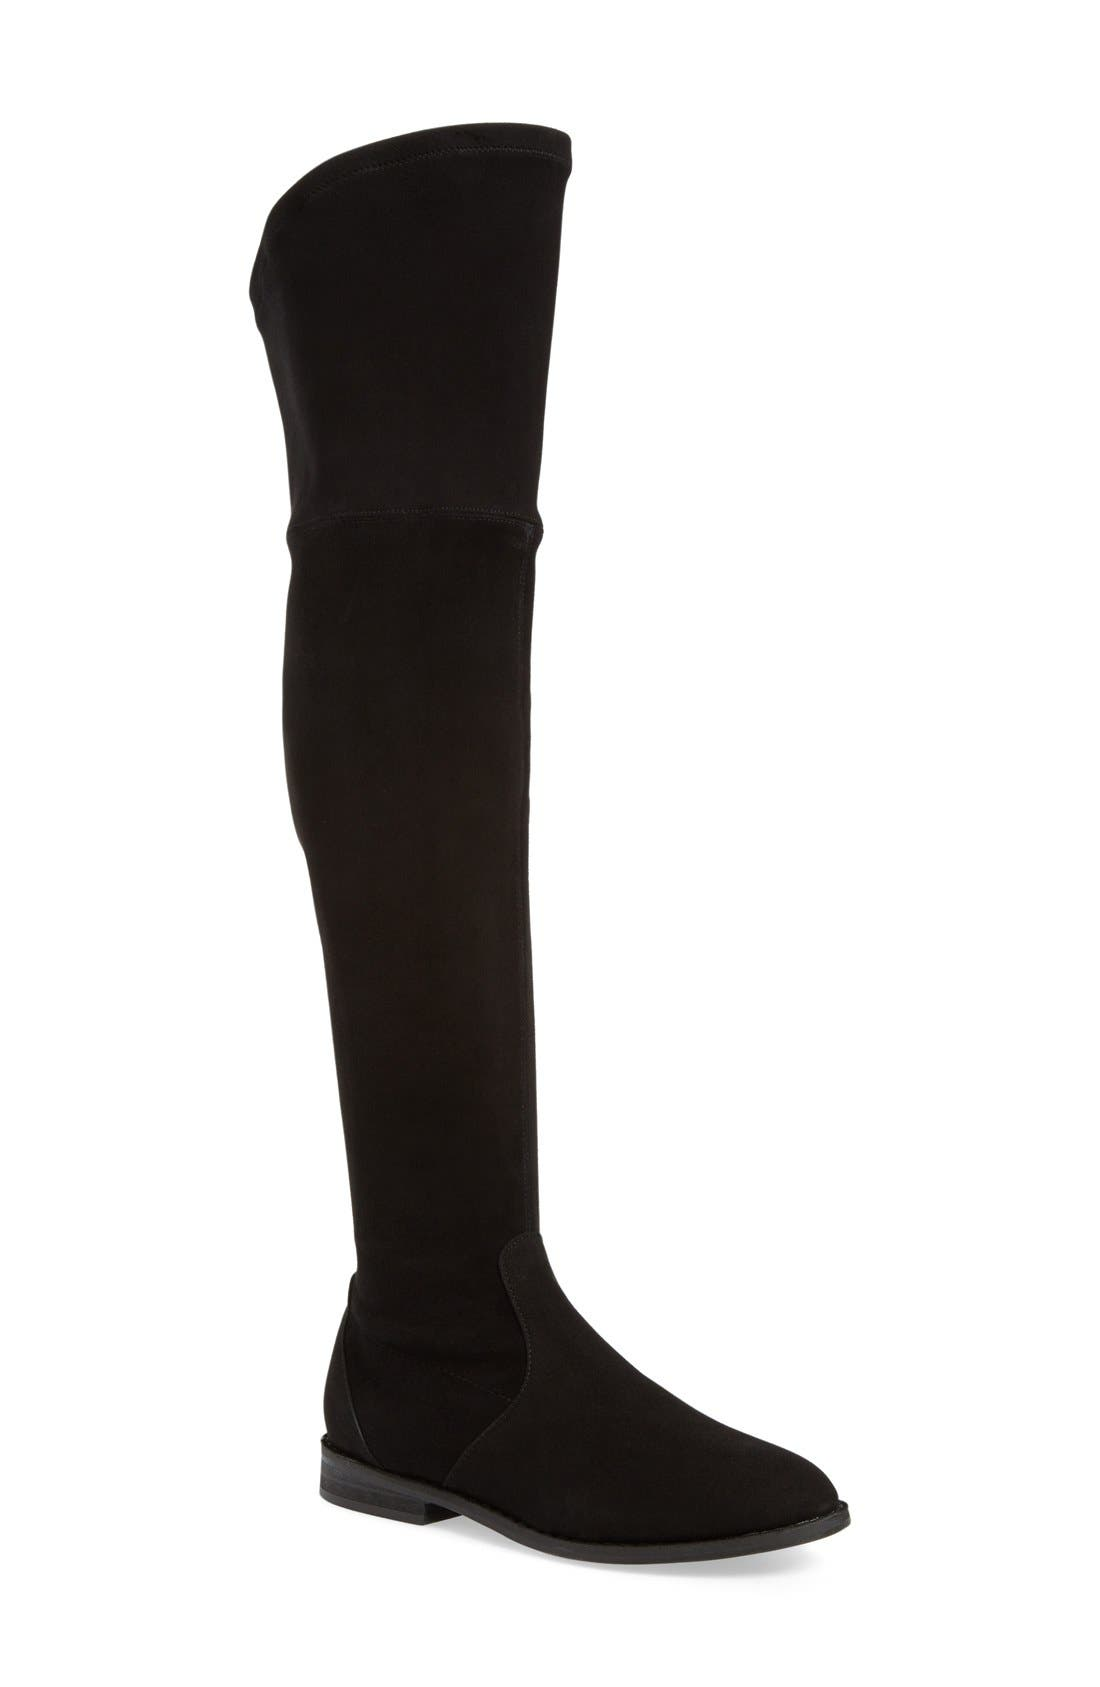 'Emma' Over the Knee Boot,                             Main thumbnail 1, color,                             001